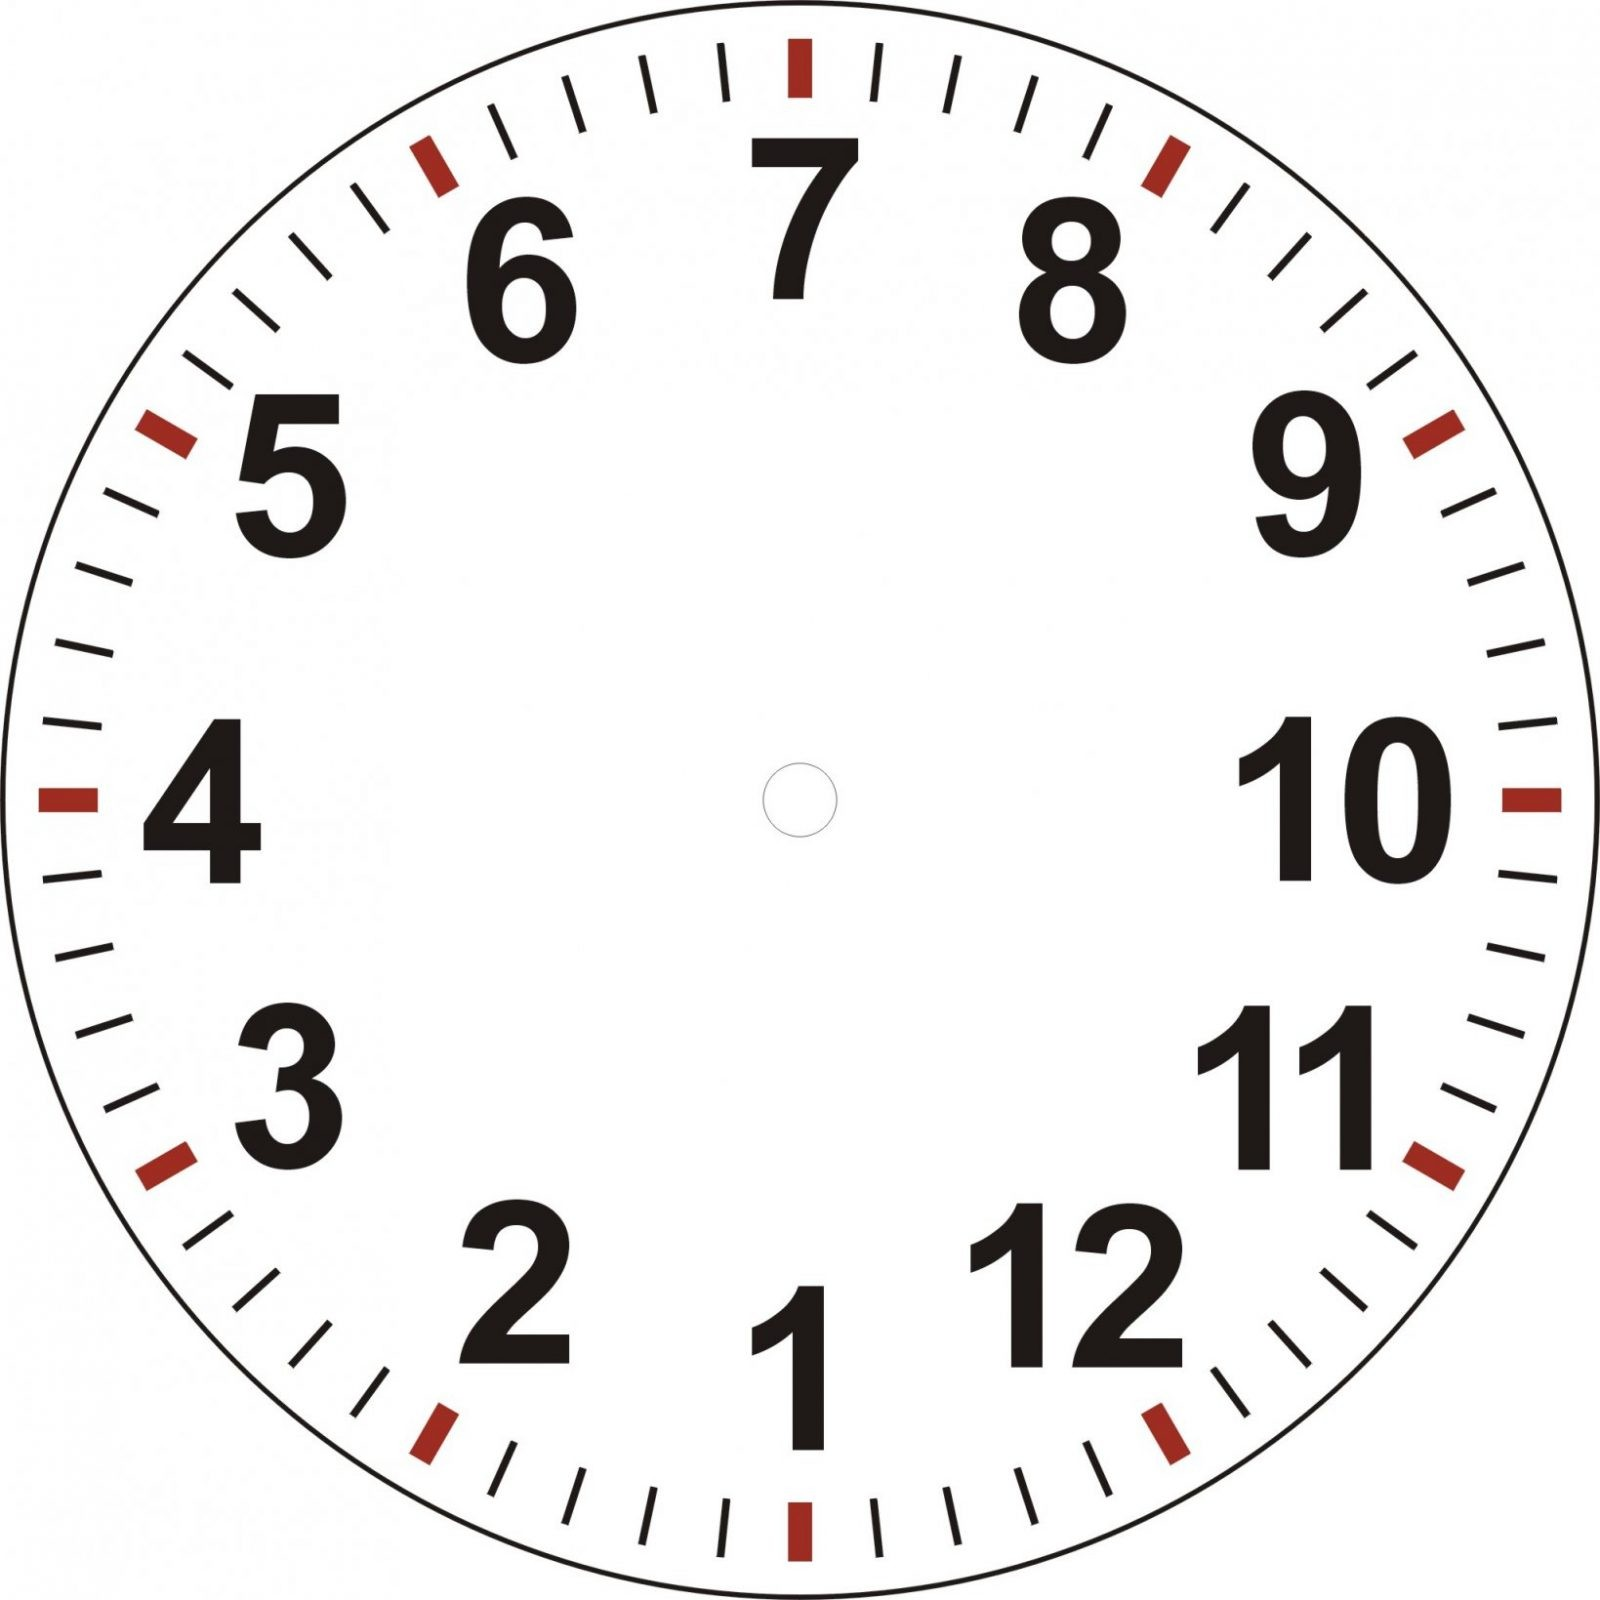 Make Your Own Clock Faces  Educational Innovations  Clip Art Library von Make Your Own Clock Bild